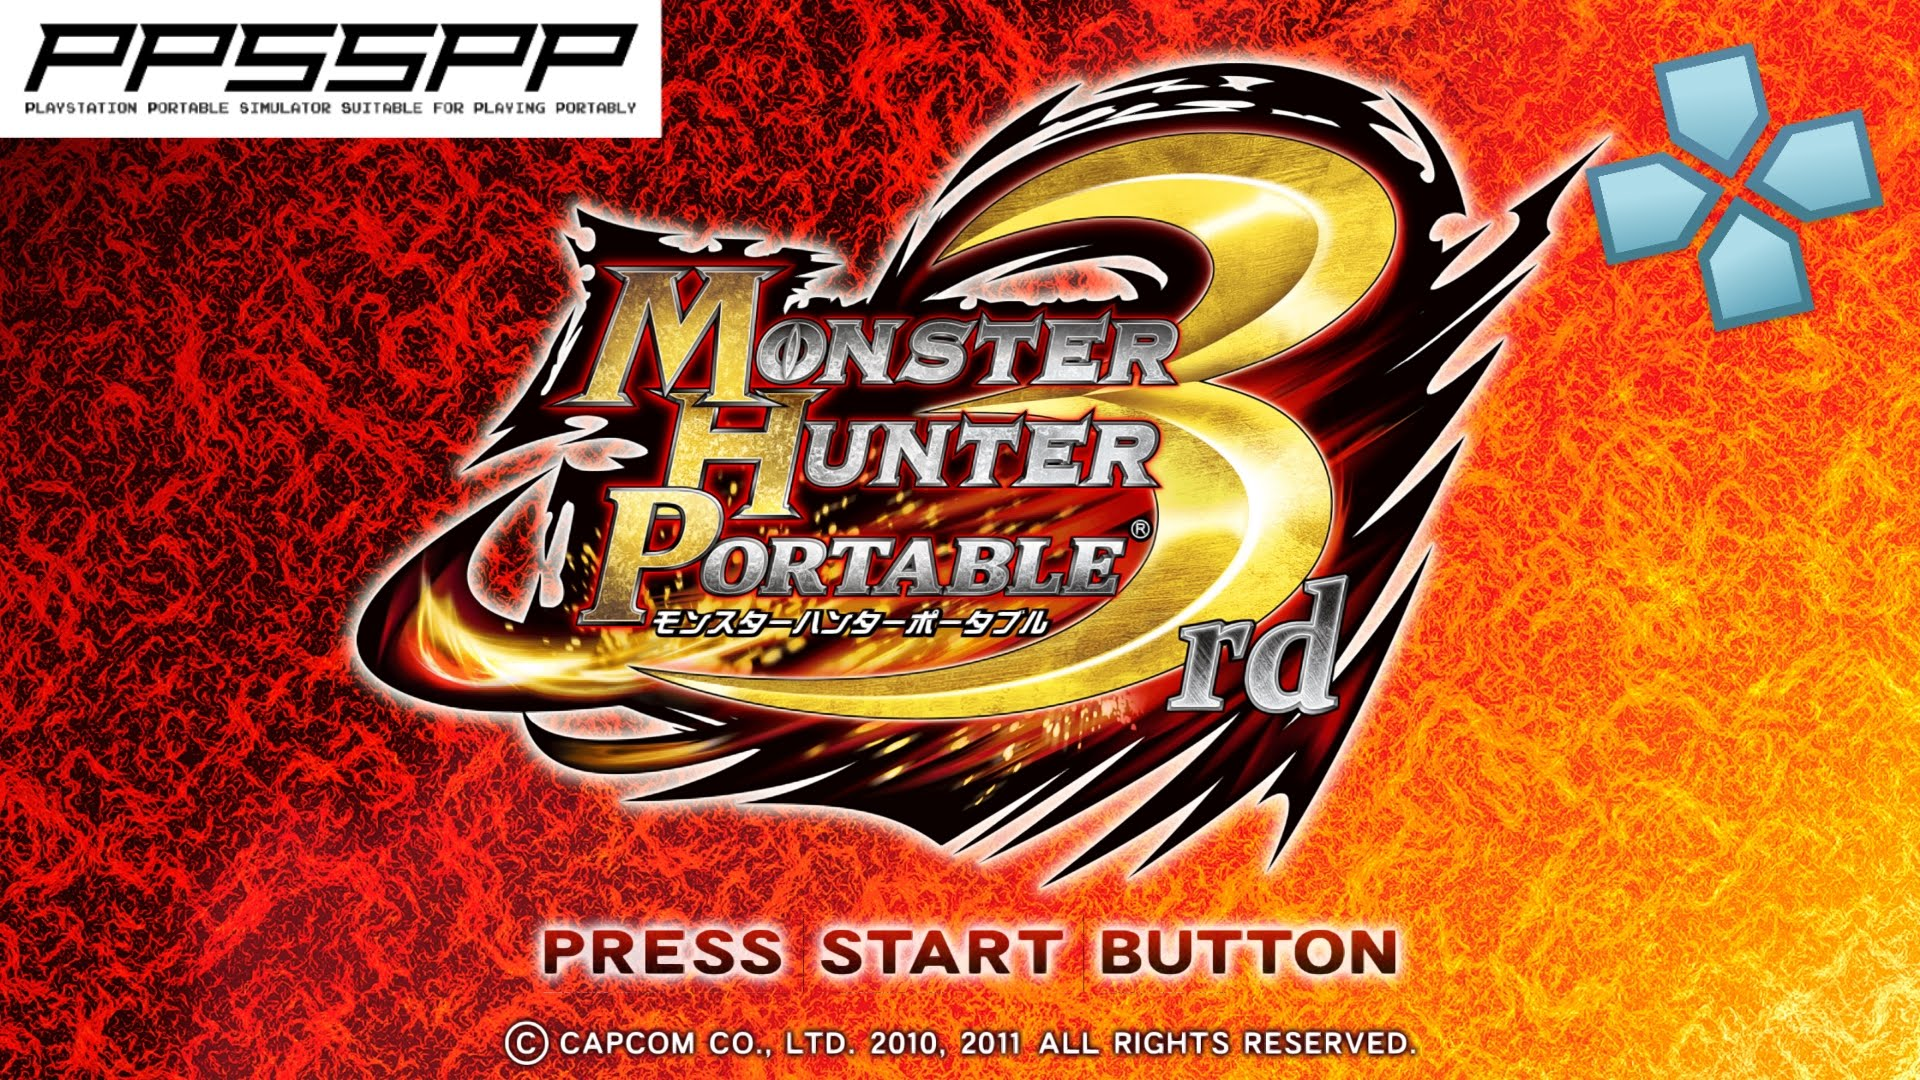 Monster Hunter Portable 3rd Hd Psp Gameplay Ppsspp 1080p Latestgamevideos